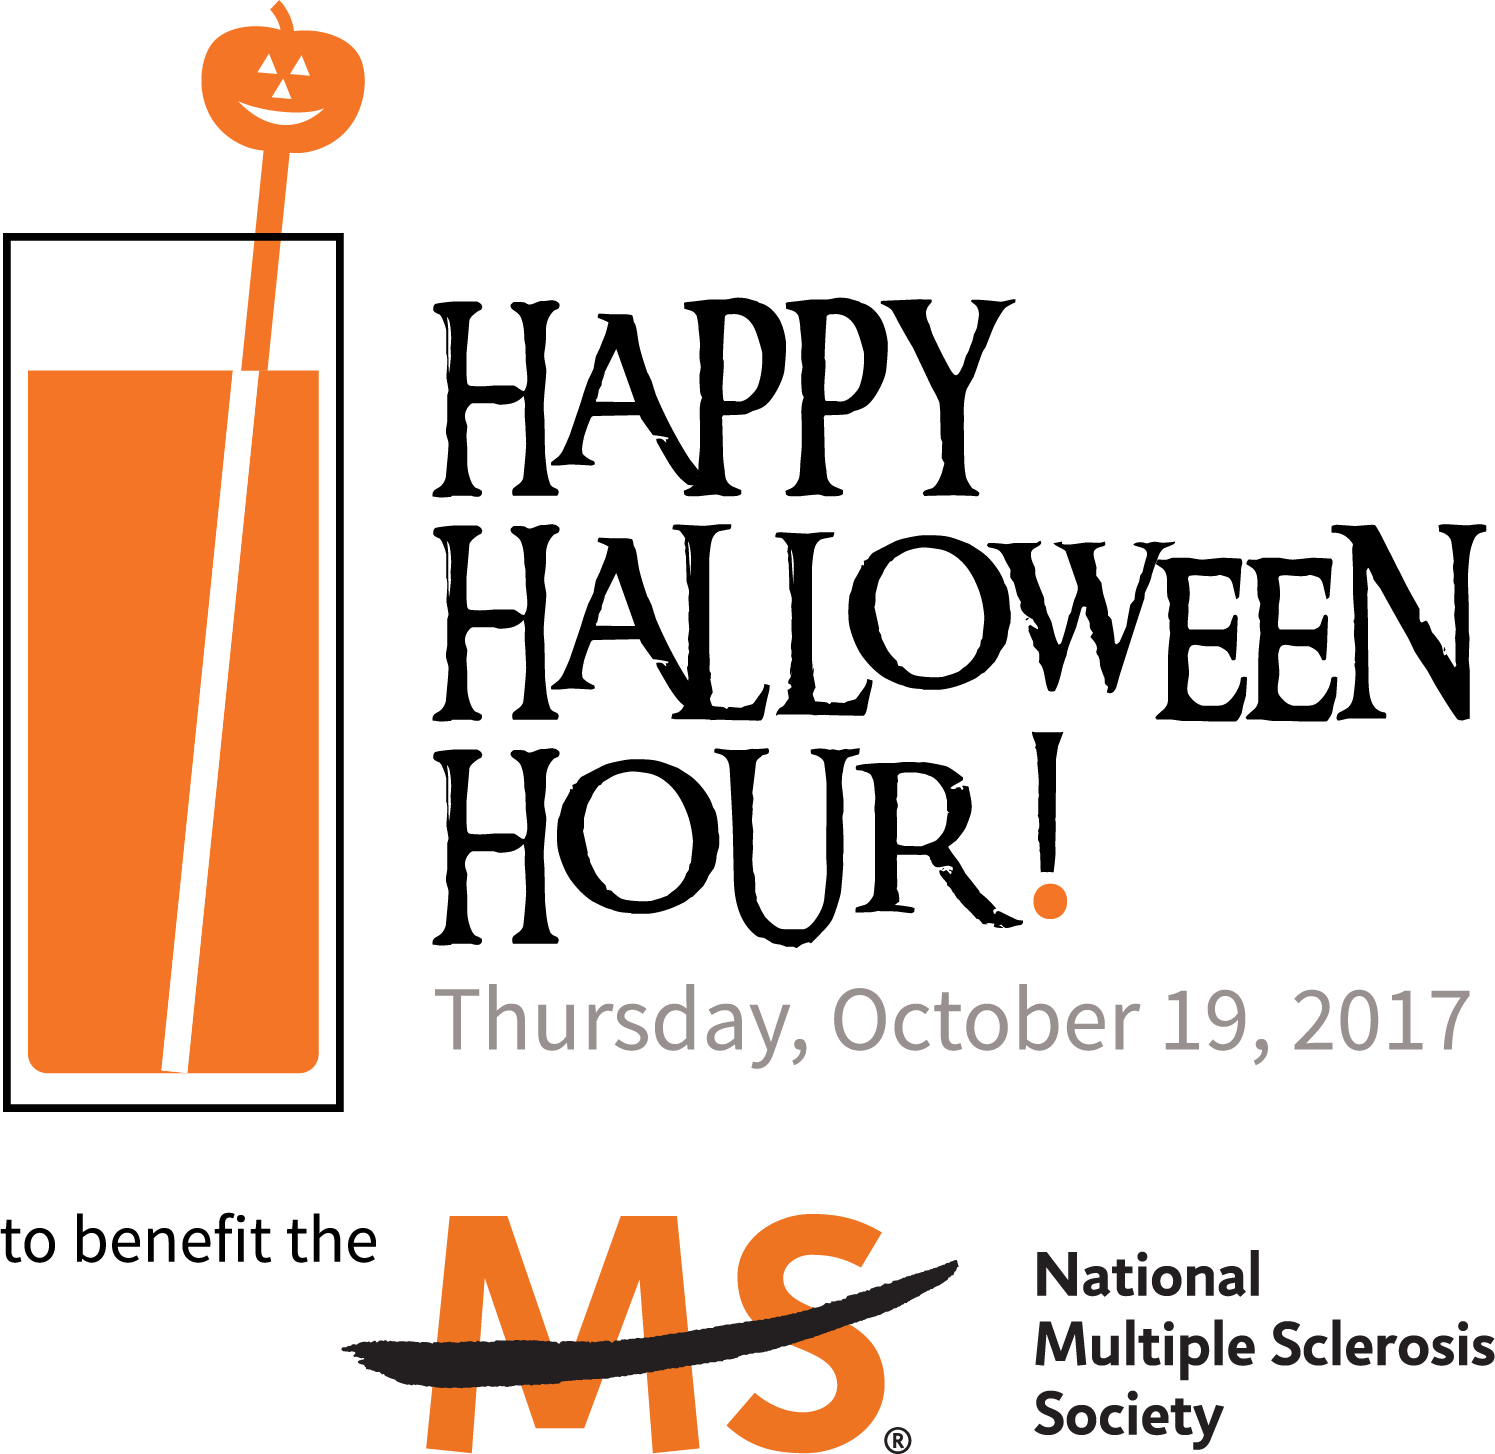 Channel 3 is proud to partner with the National Multiple Sclerosis Society Connecticut Chapter on their second annual Happy Halloween Hour event.